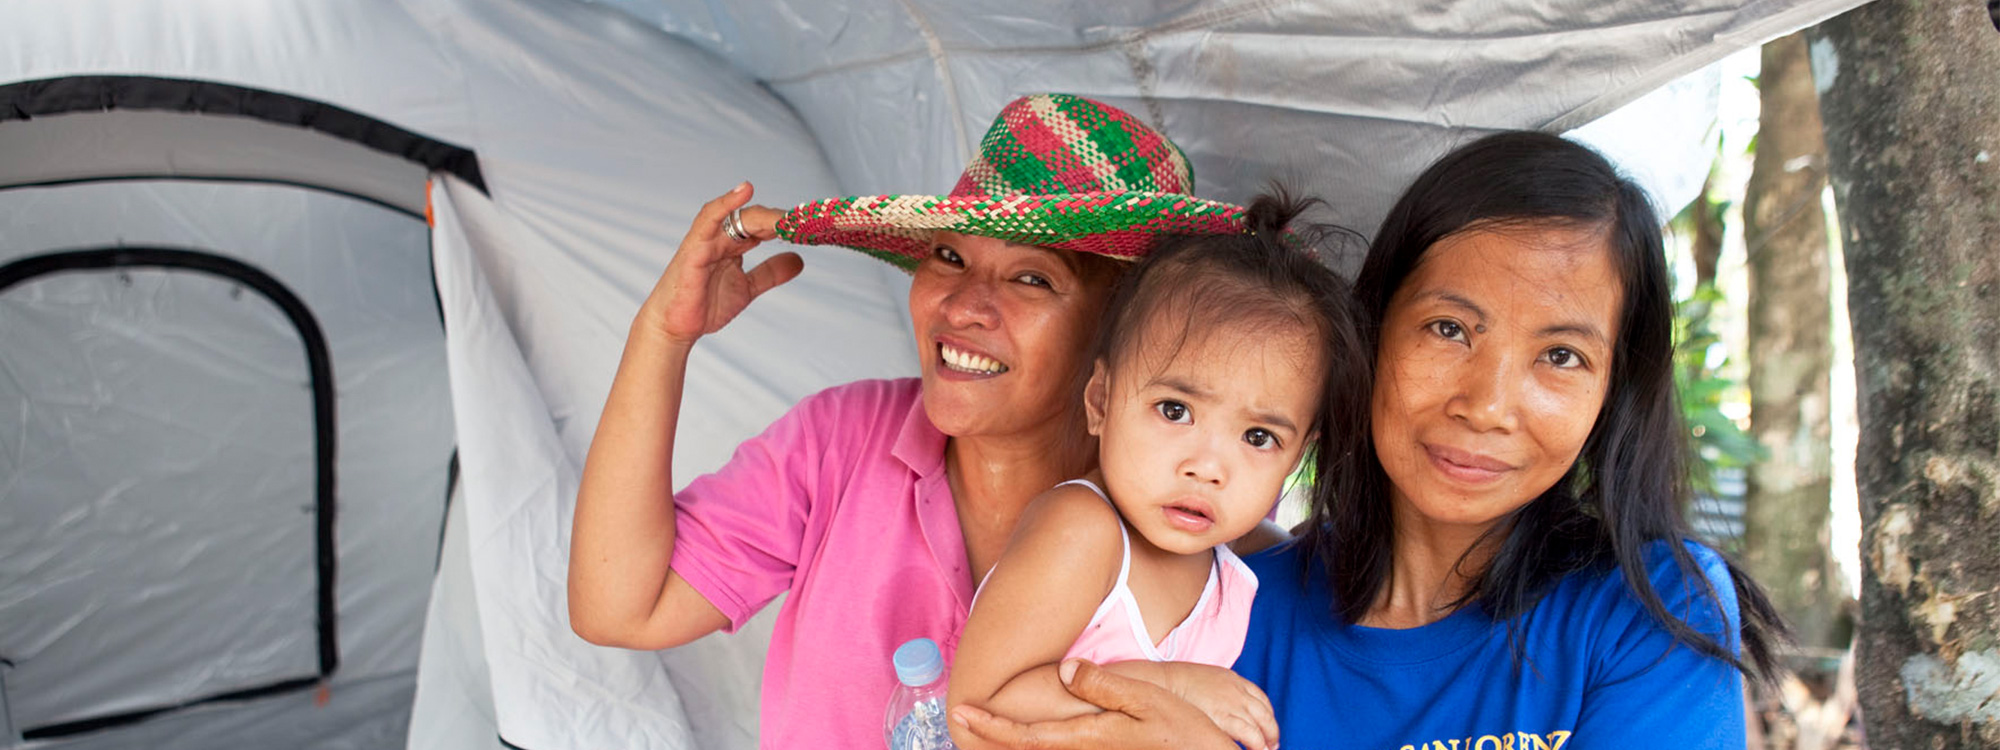 A woman holding a child stands next to another woman in front of a tent. The women are both smiling.